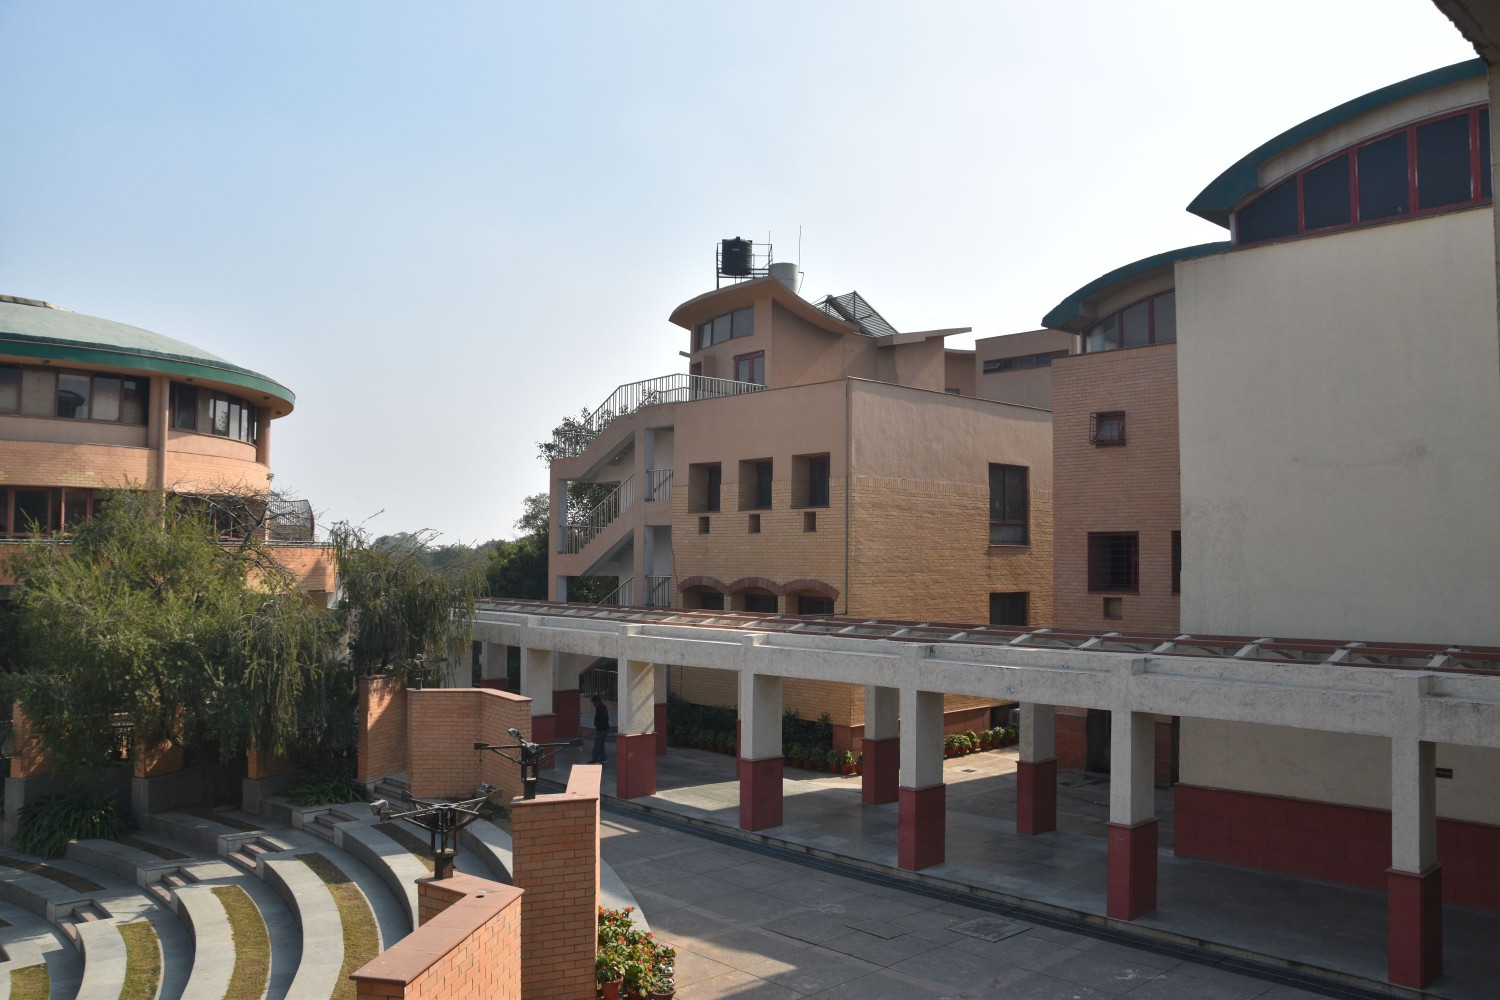 Photo of the amphitheatre, canteen and 5th grade block from the first floor.